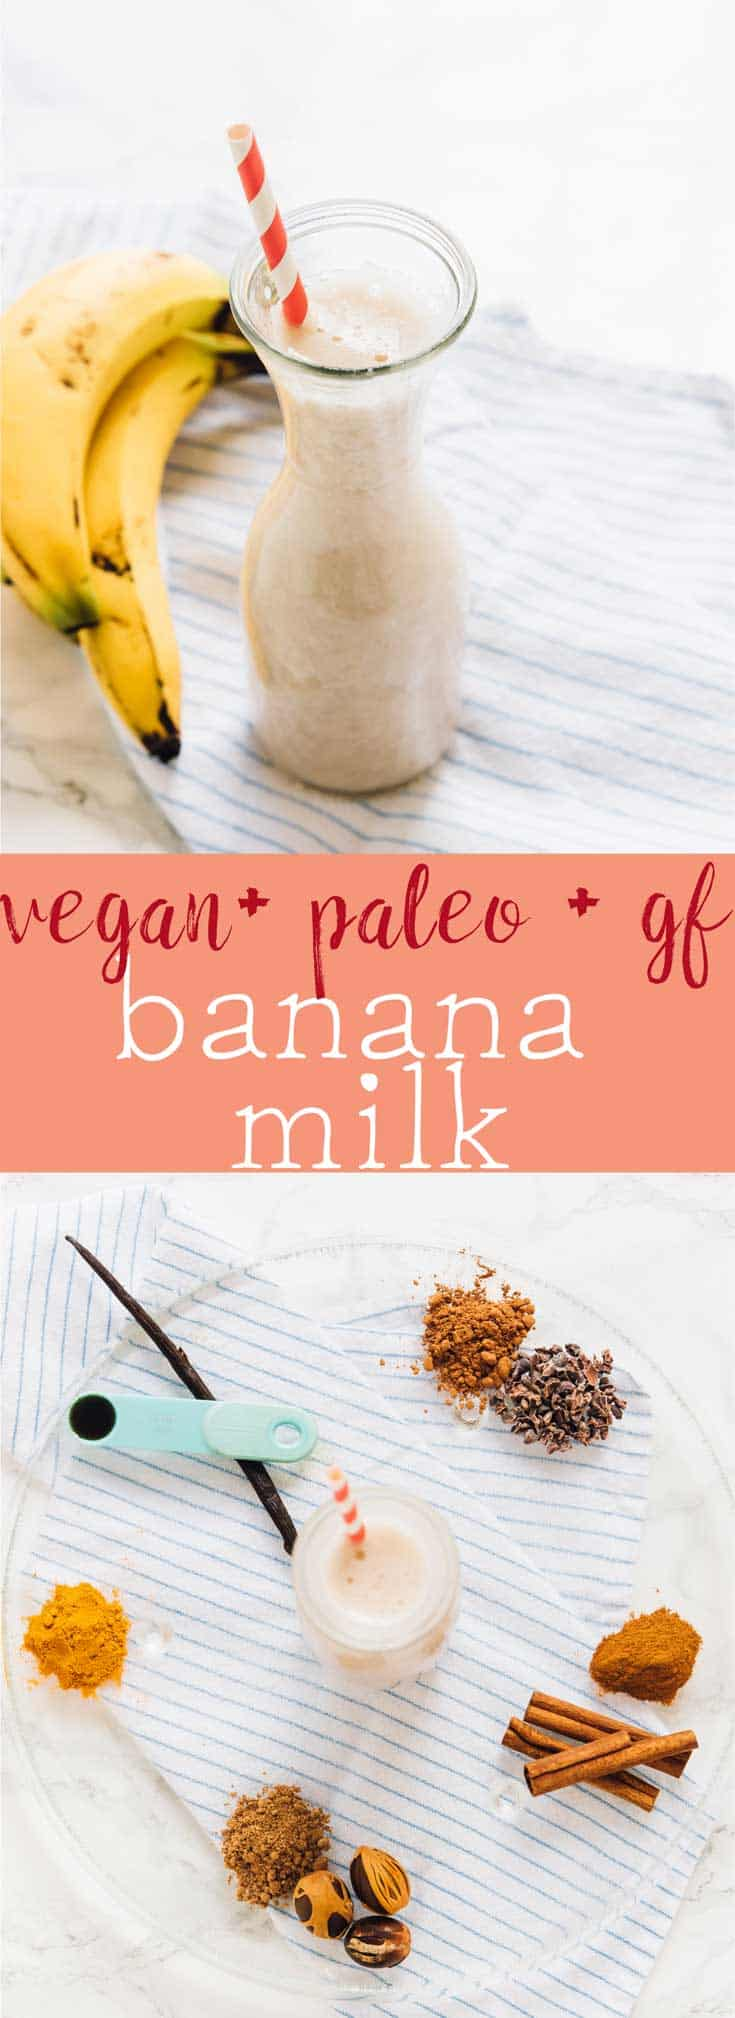 Learn how to make this nut free, vegan, paleo banana milk in less than 5 minutes! PERFECT for allergies, loaded with nutrition and tastes delicious!